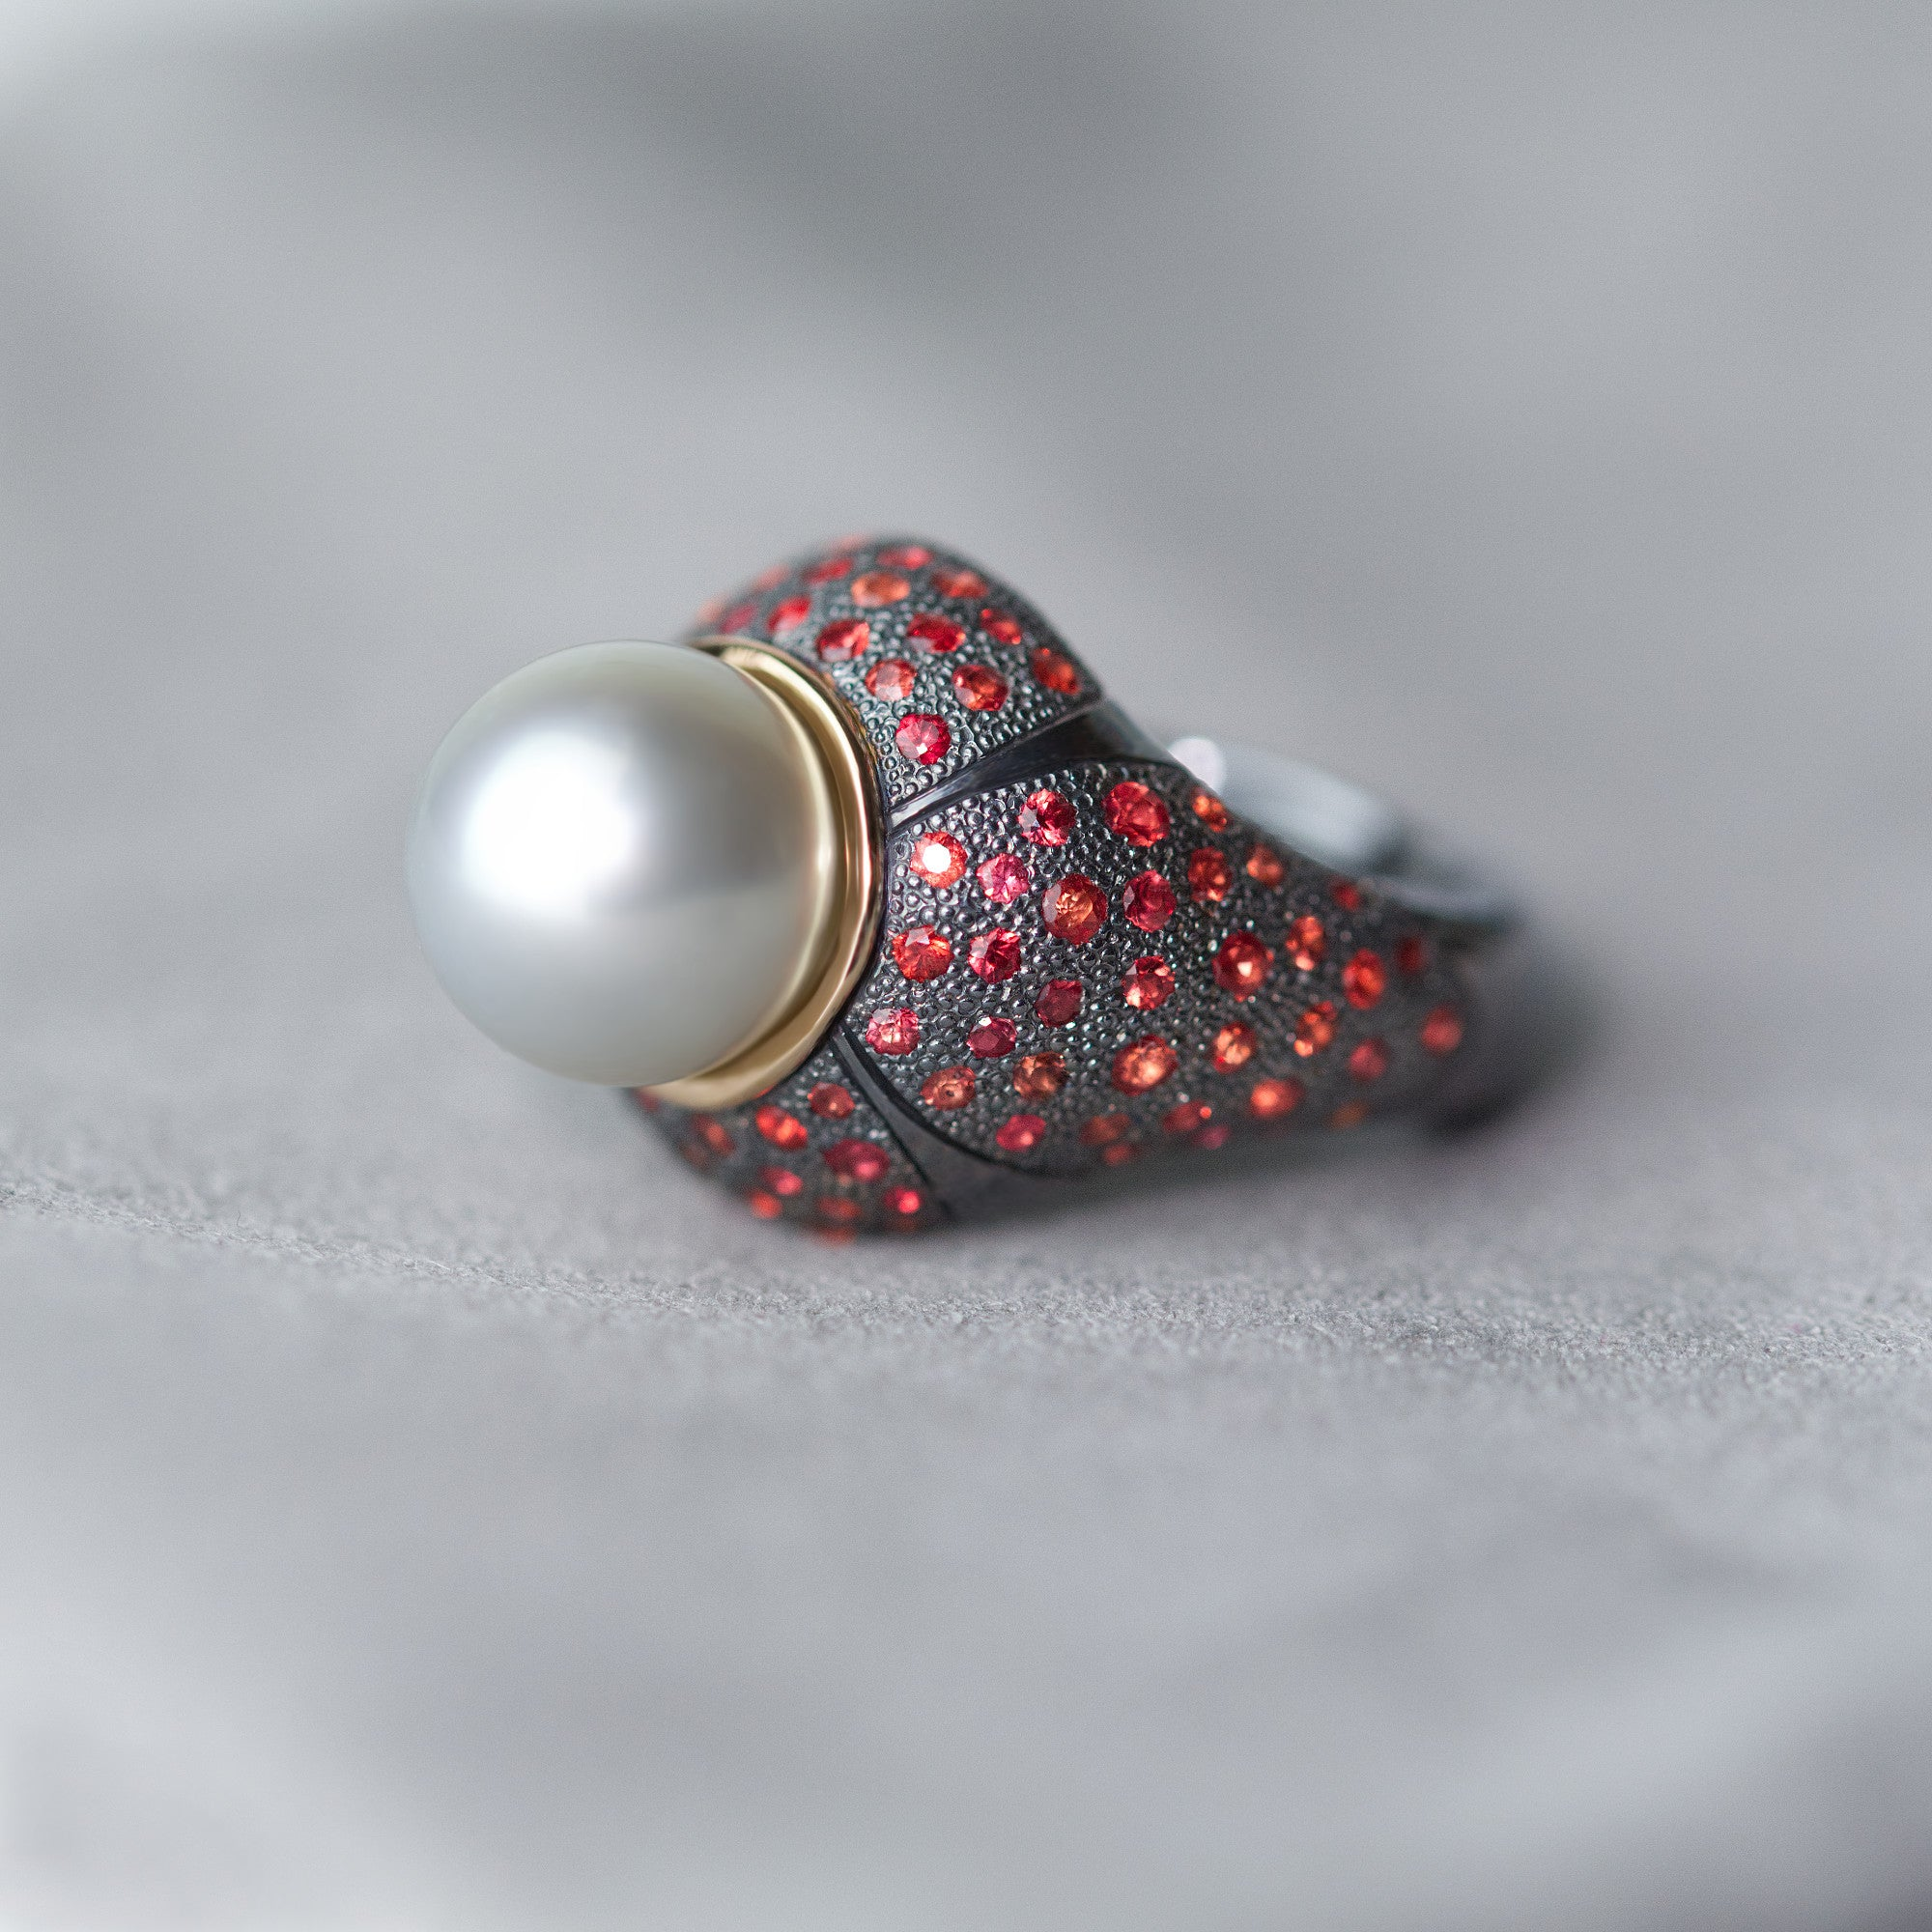 Art Deco Tahitian Pearl Ring with red sapphires made by Ewa Z. Sleziona Jewellery